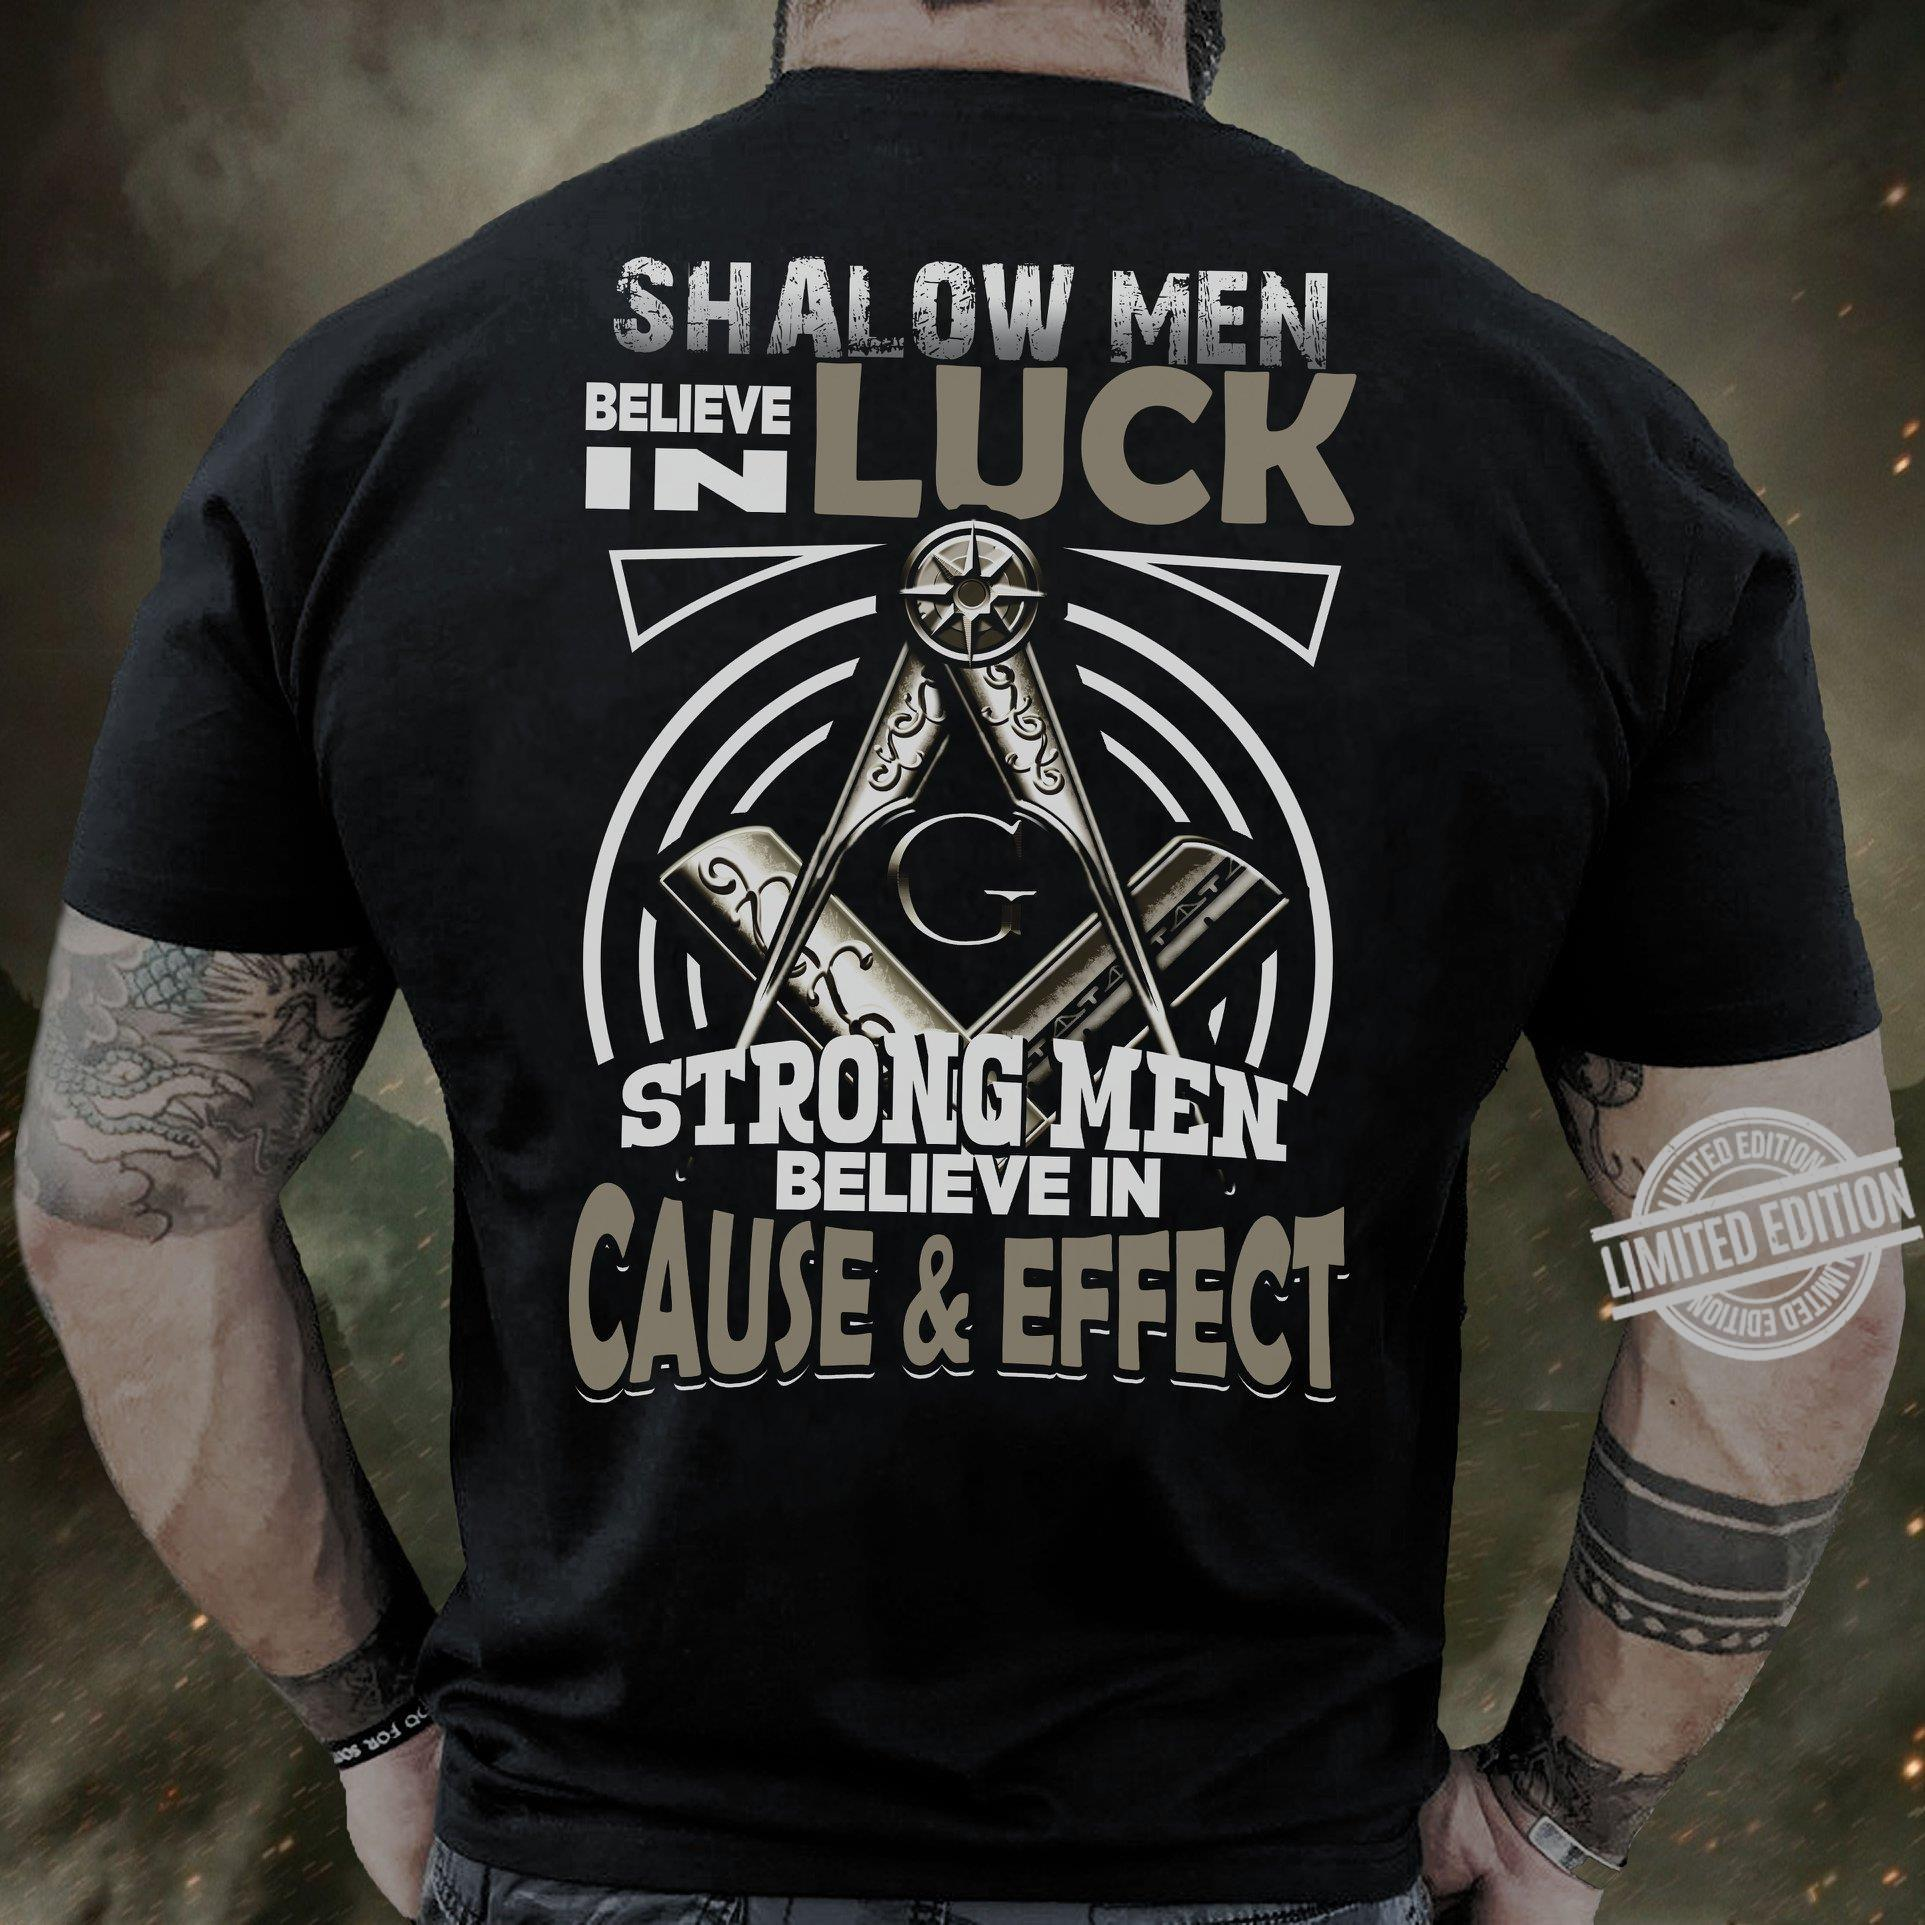 Shalow Men Believe In Luck Strong Men Believe In Cause & Effect Shirt